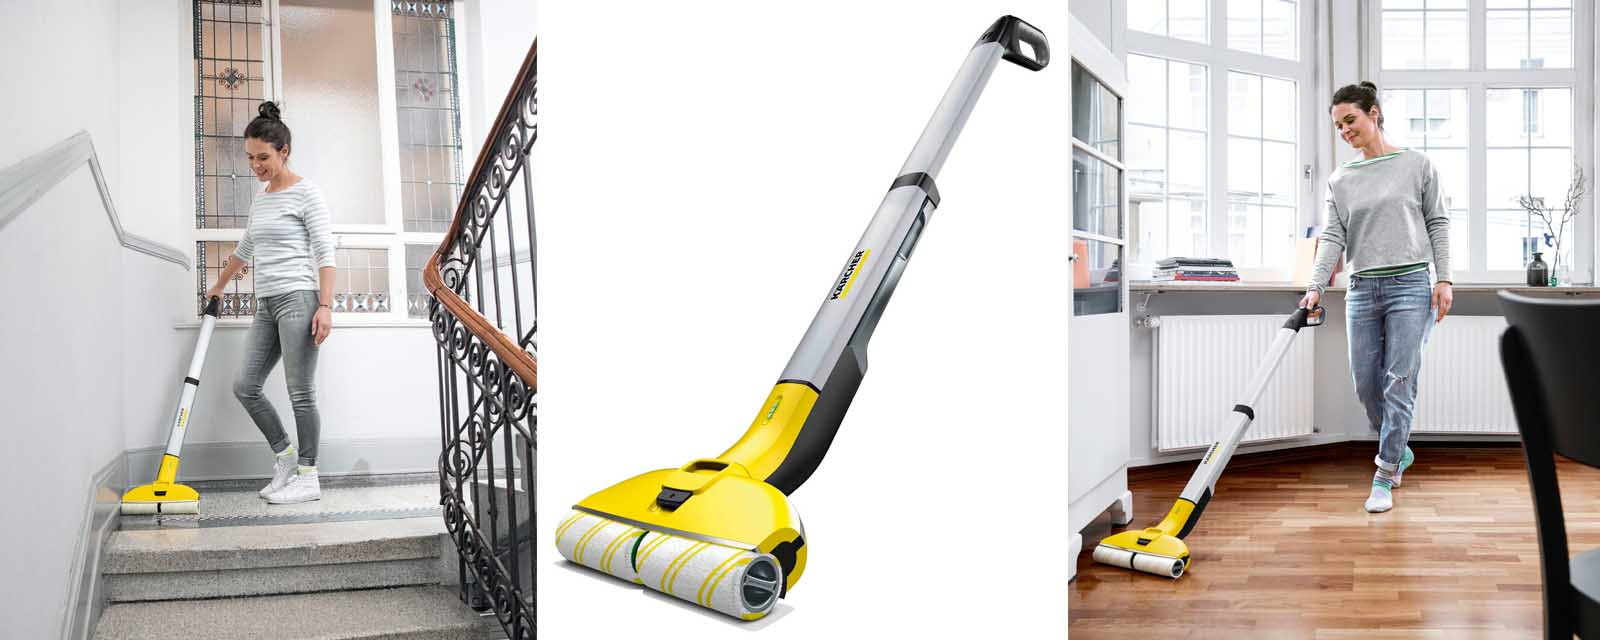 Karcher FC3 Cordless Hard Floor Cleaner being used on stairs and timber floor boards.